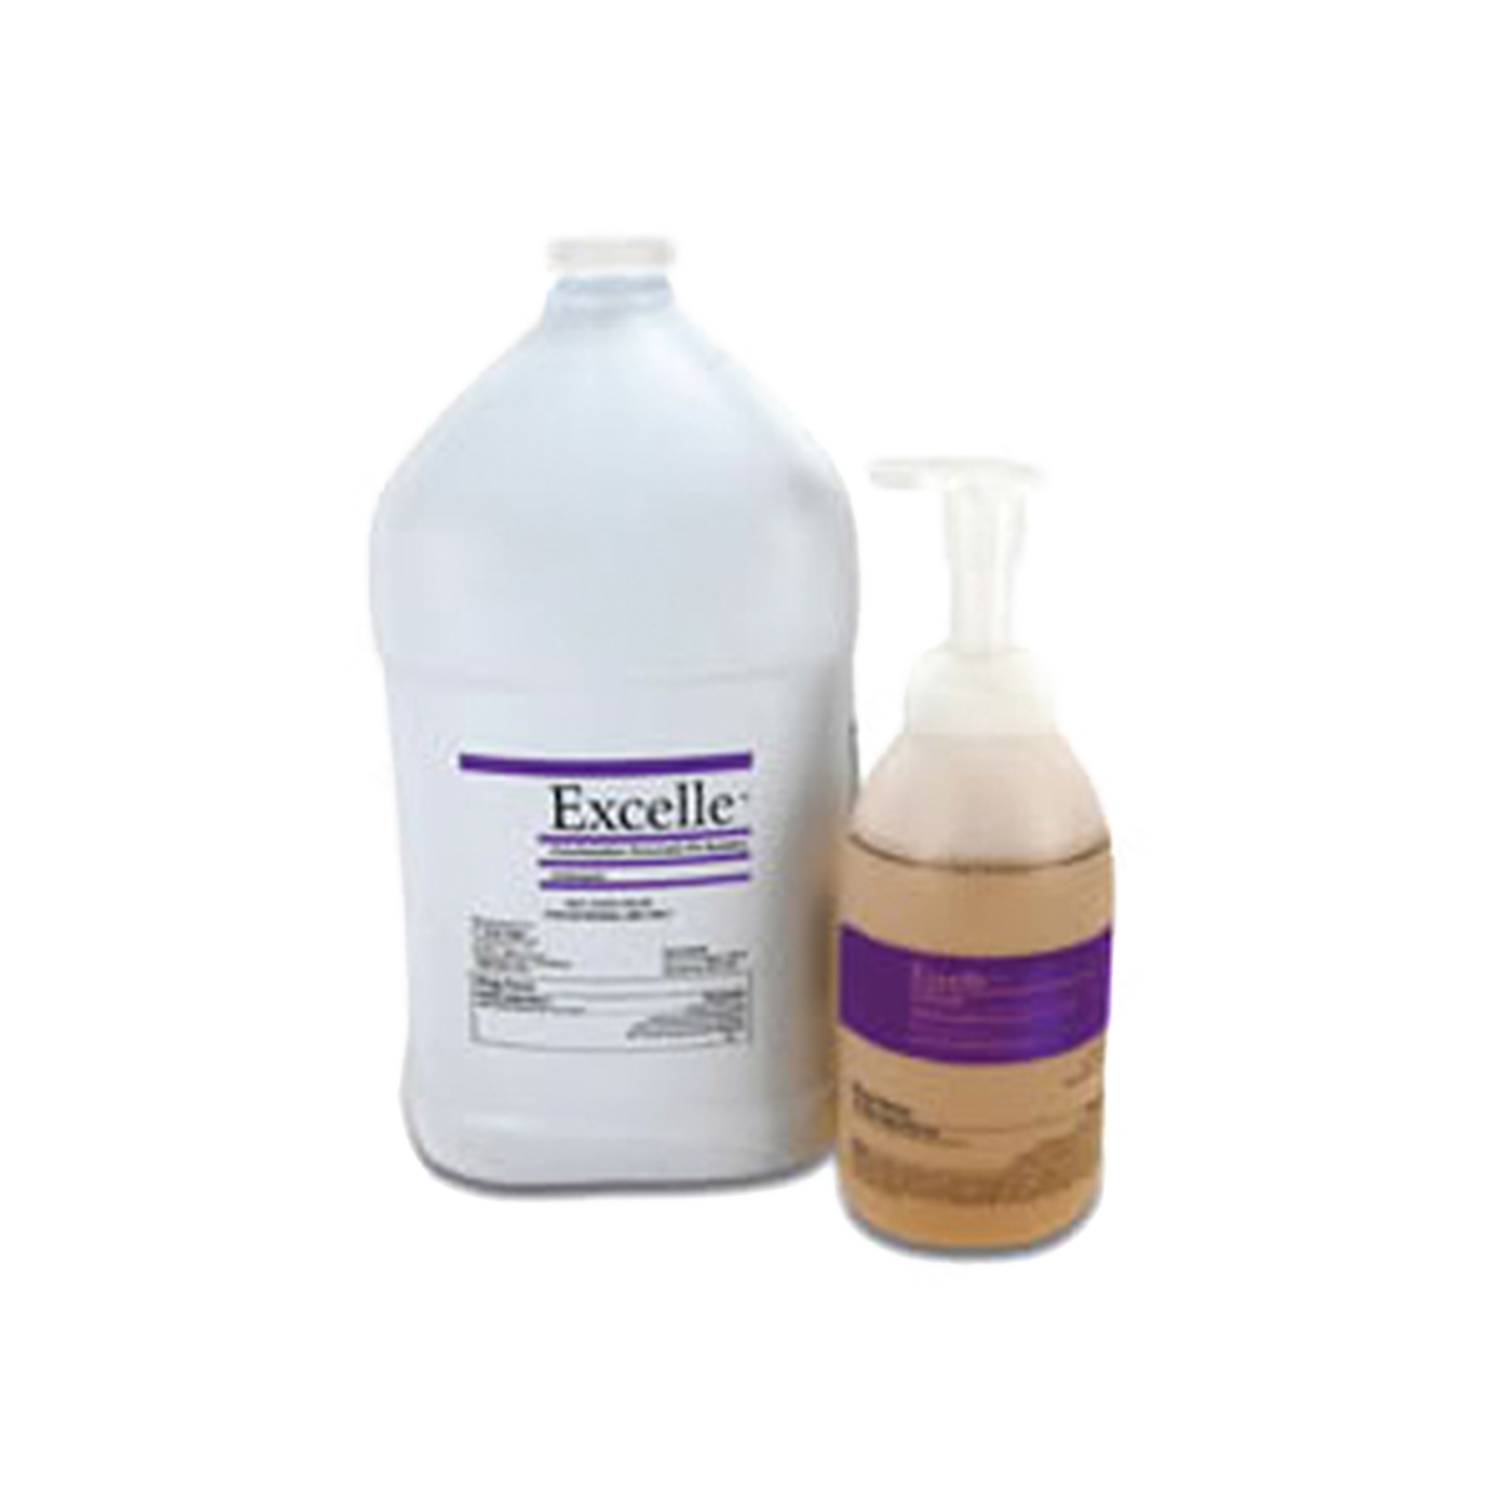 Certol 4% Chlorhexidine Gluconate Foam Soap Solution